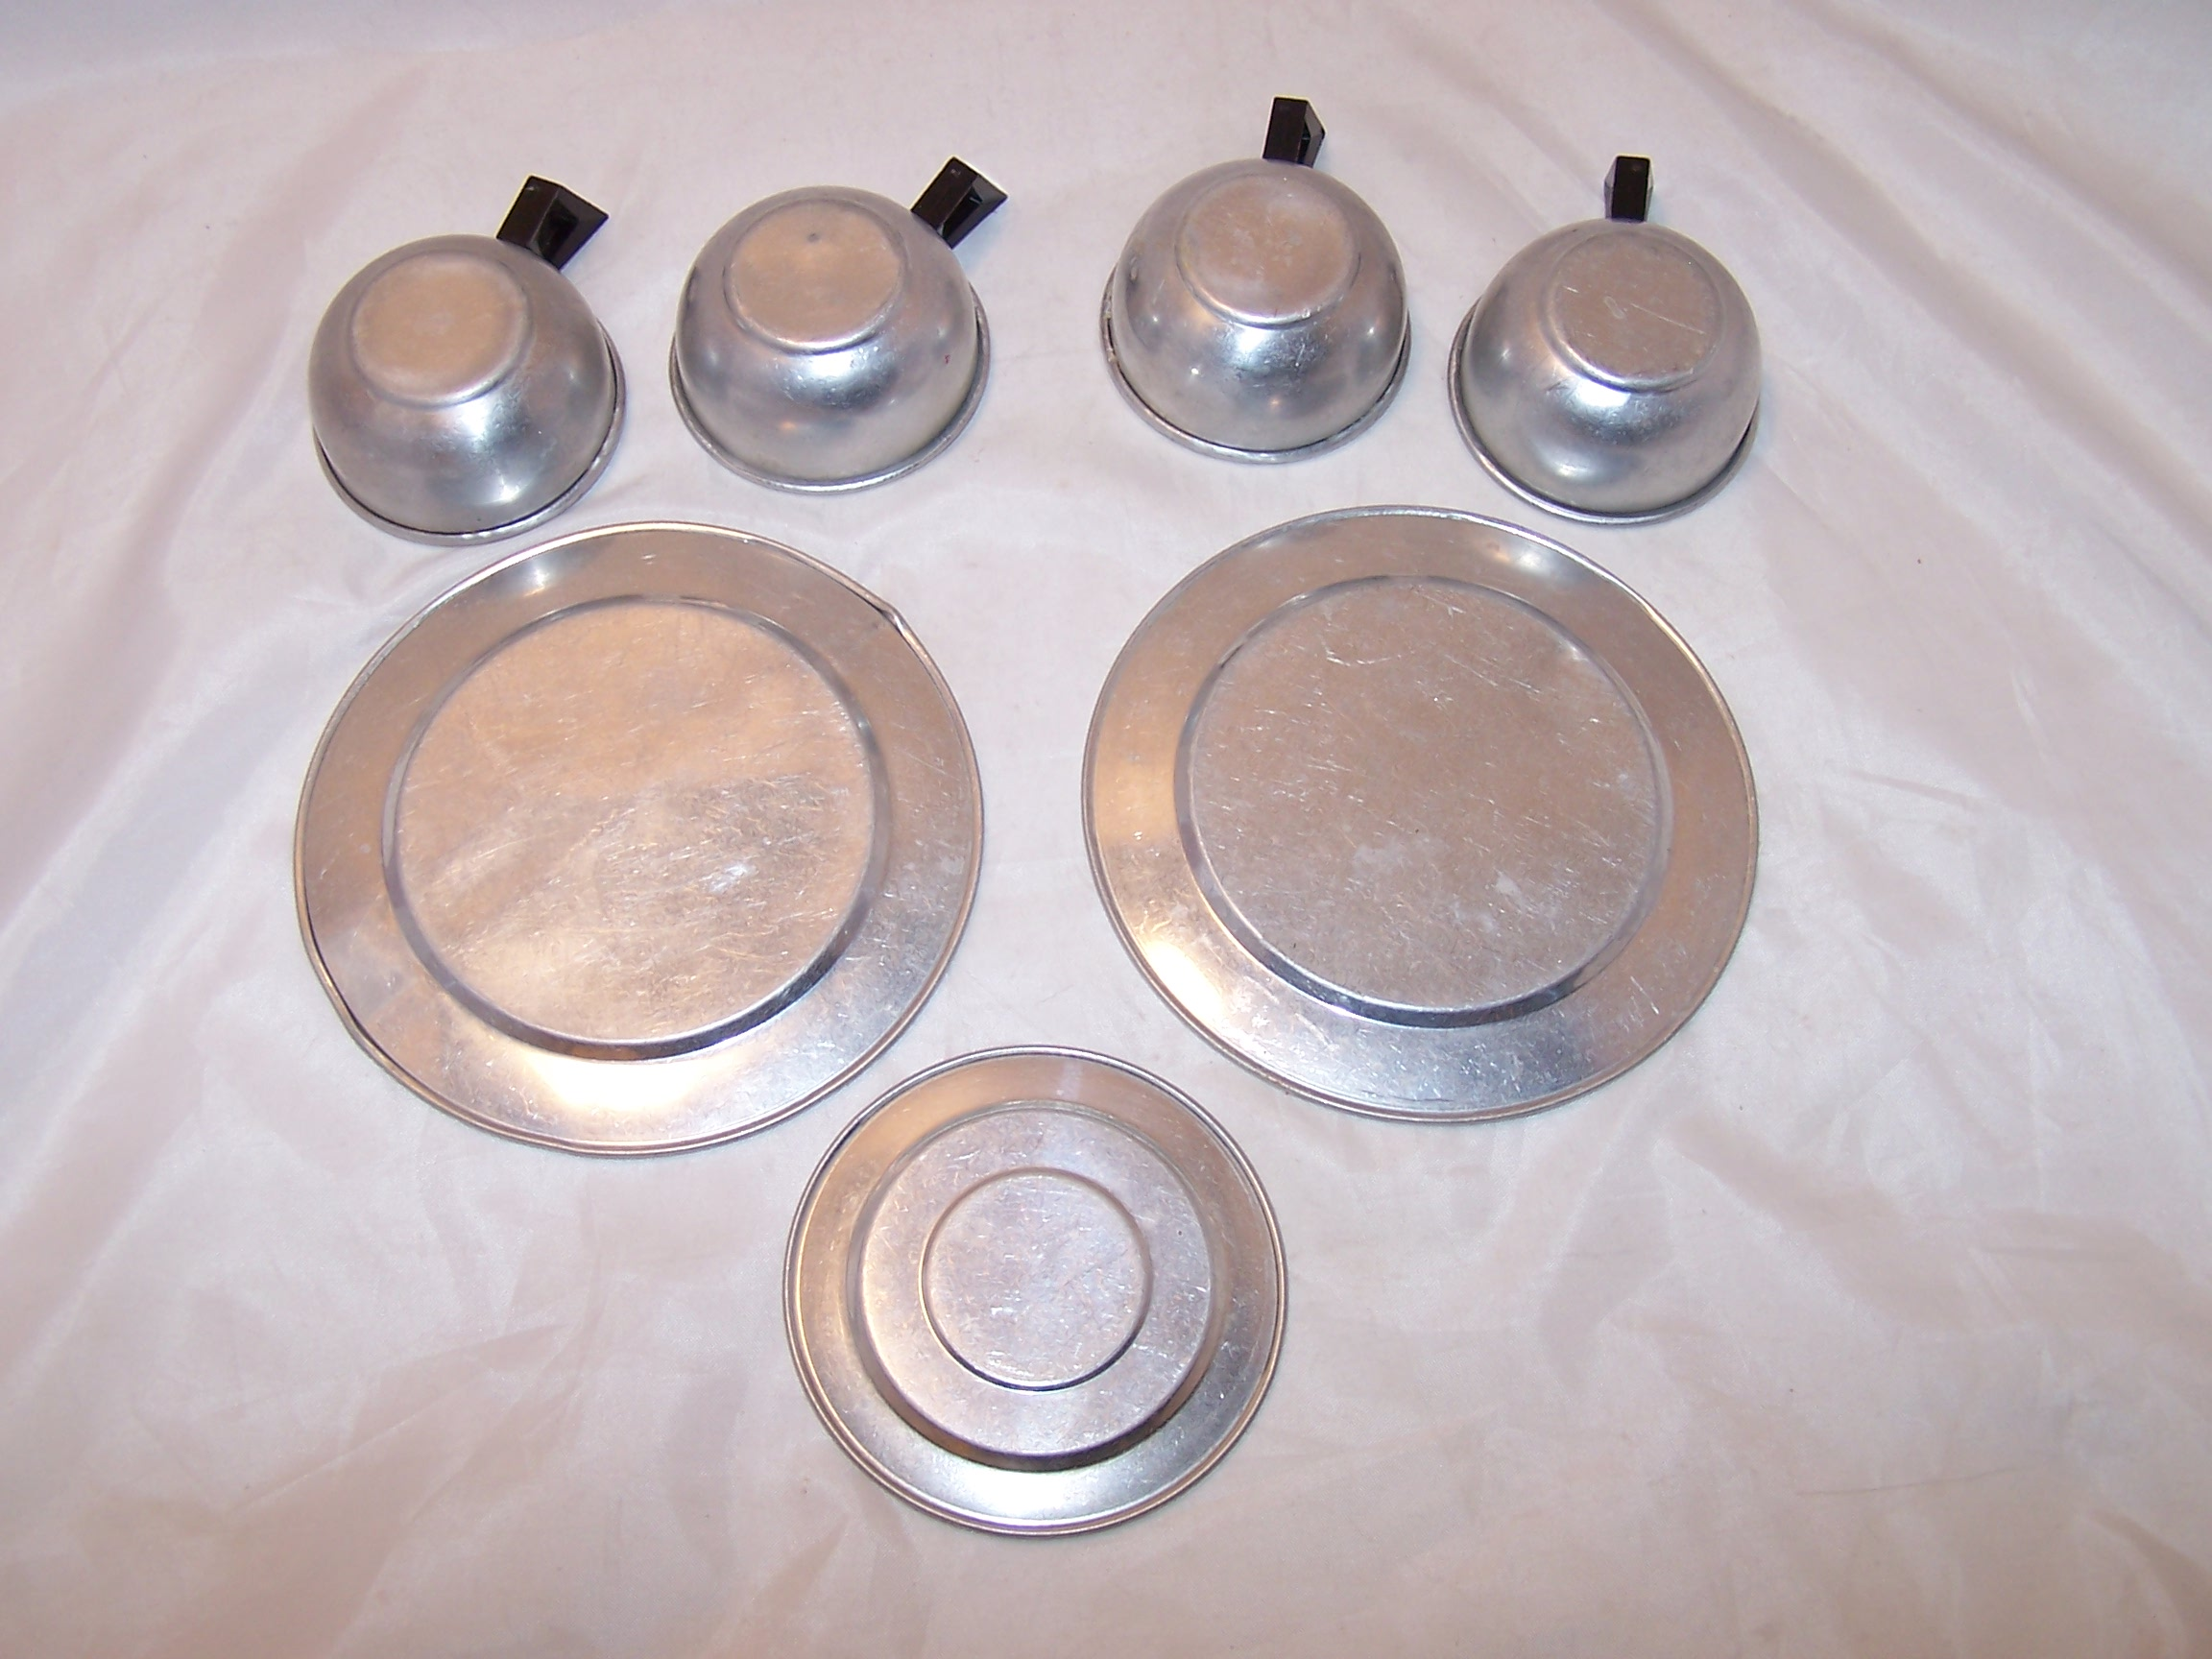 Image 2 of Toy Cups, Saucer, Plates, Aluminum, Vintage Childs Toy